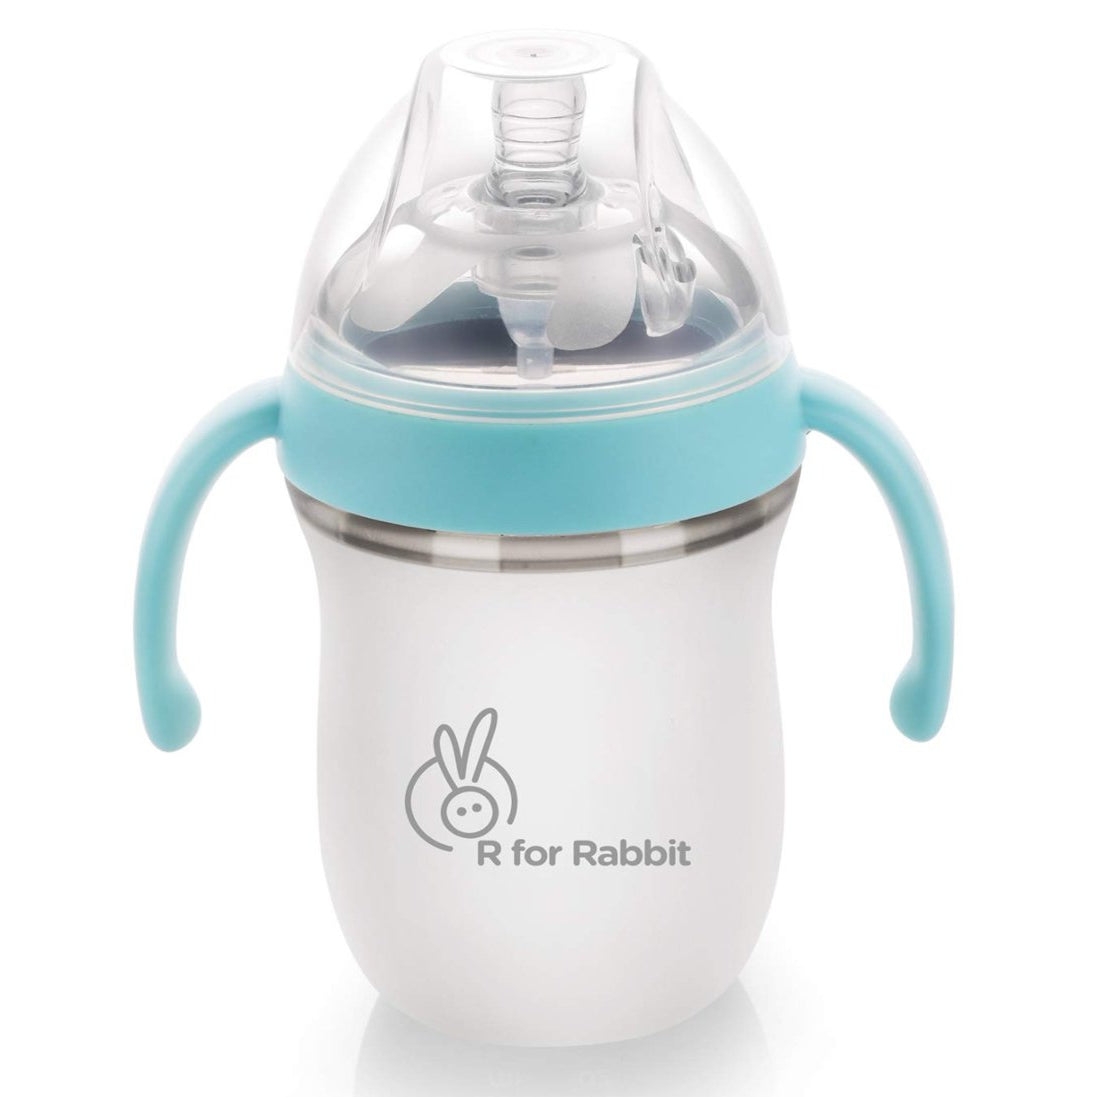 R for Rabbit First Feed 160 ml| 5 fl Oz Silicon Feeding Bottle for New Born Babies of 0 Month Plus